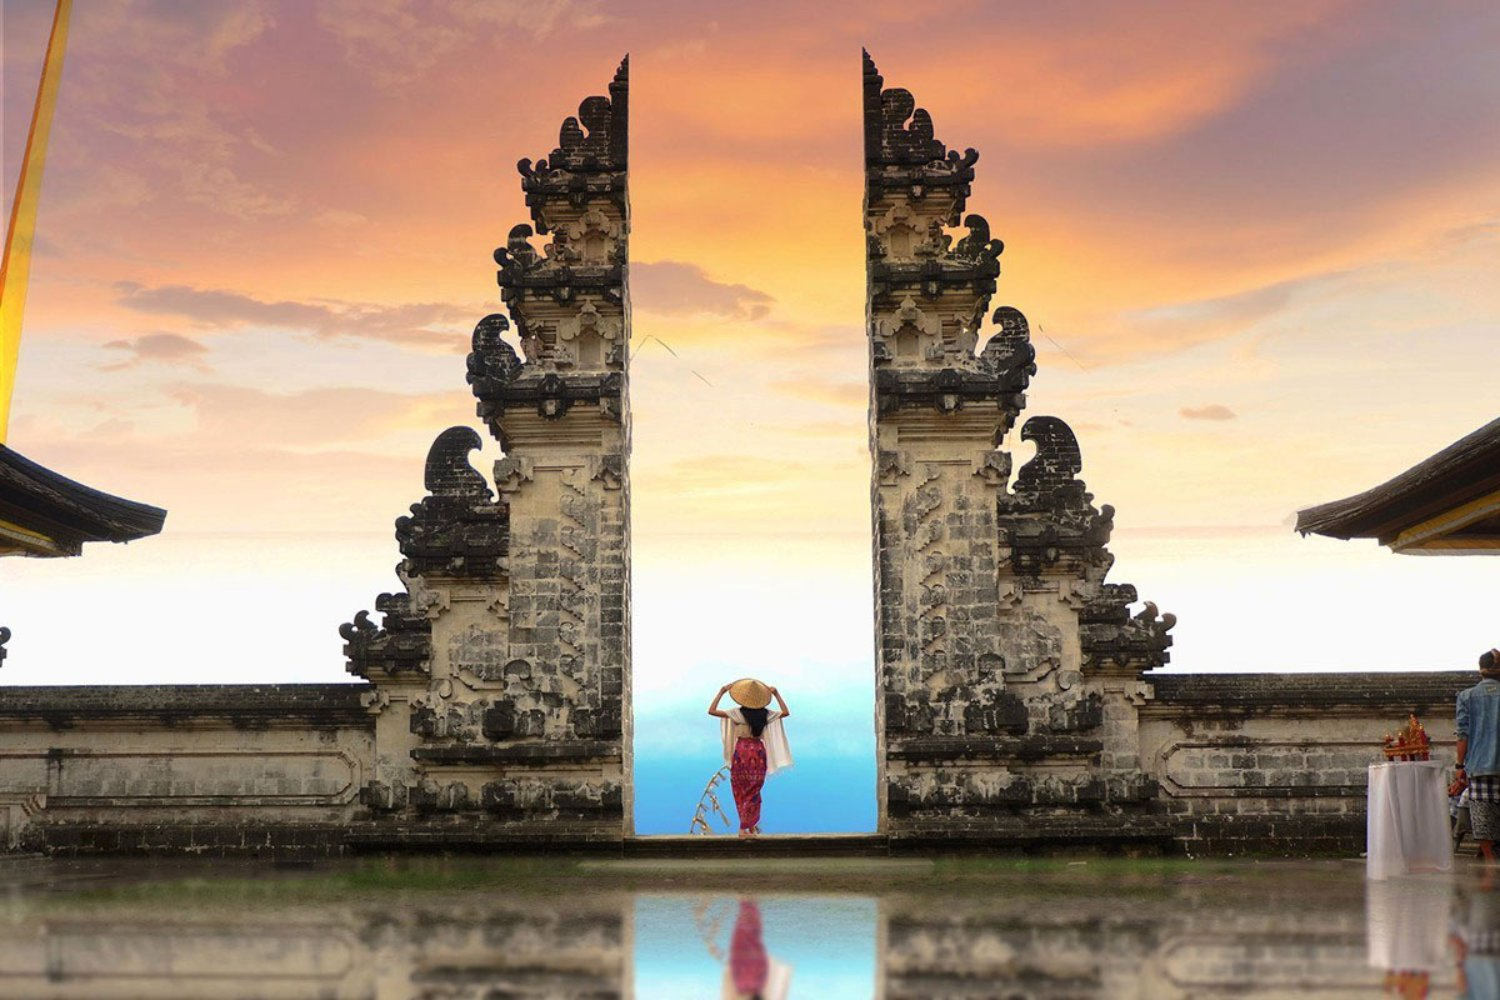 Distance from Ubud to Lempuyang Temple (Bali Taxi Service)